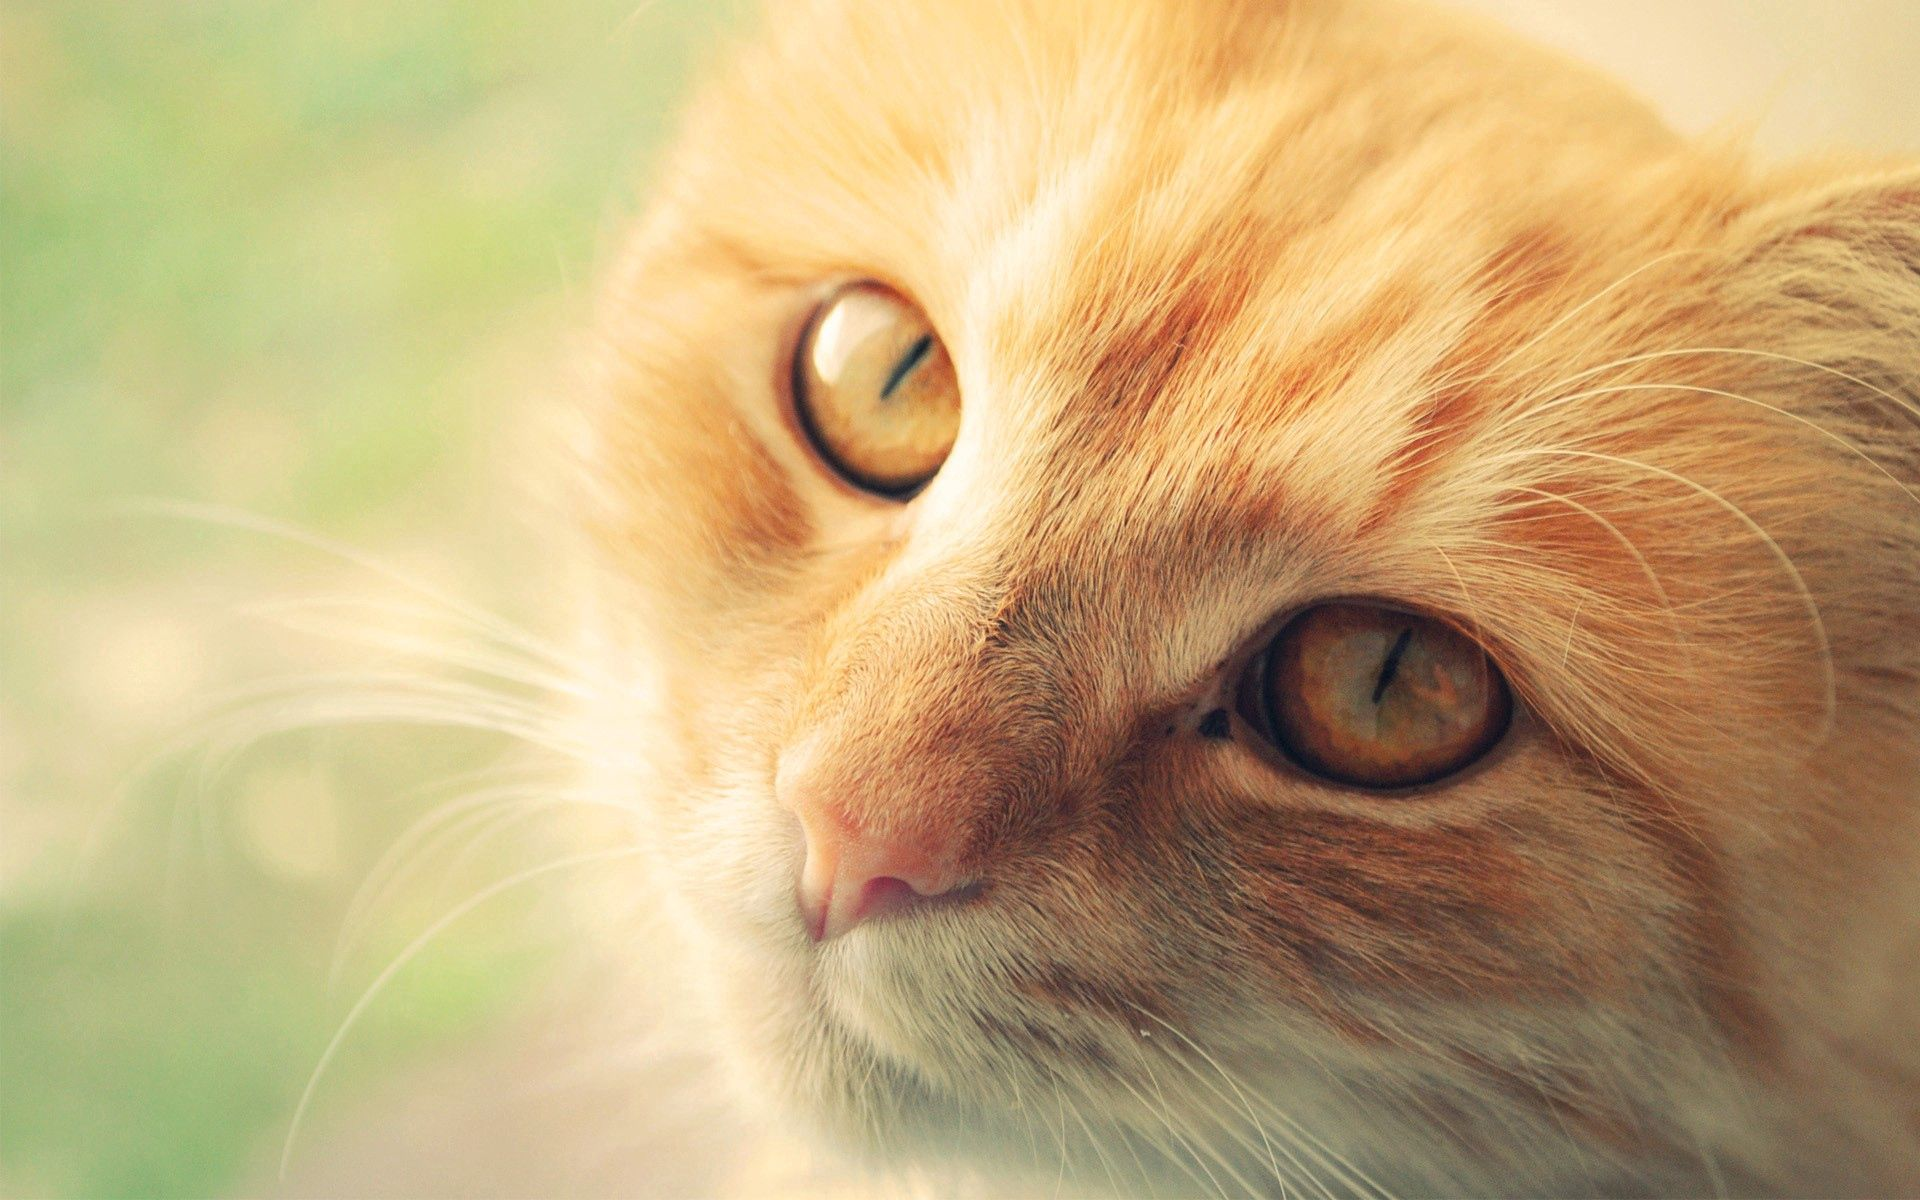 68939 download wallpaper Animals, Cat, Muzzle, Redhead, Sight, Opinion screensavers and pictures for free